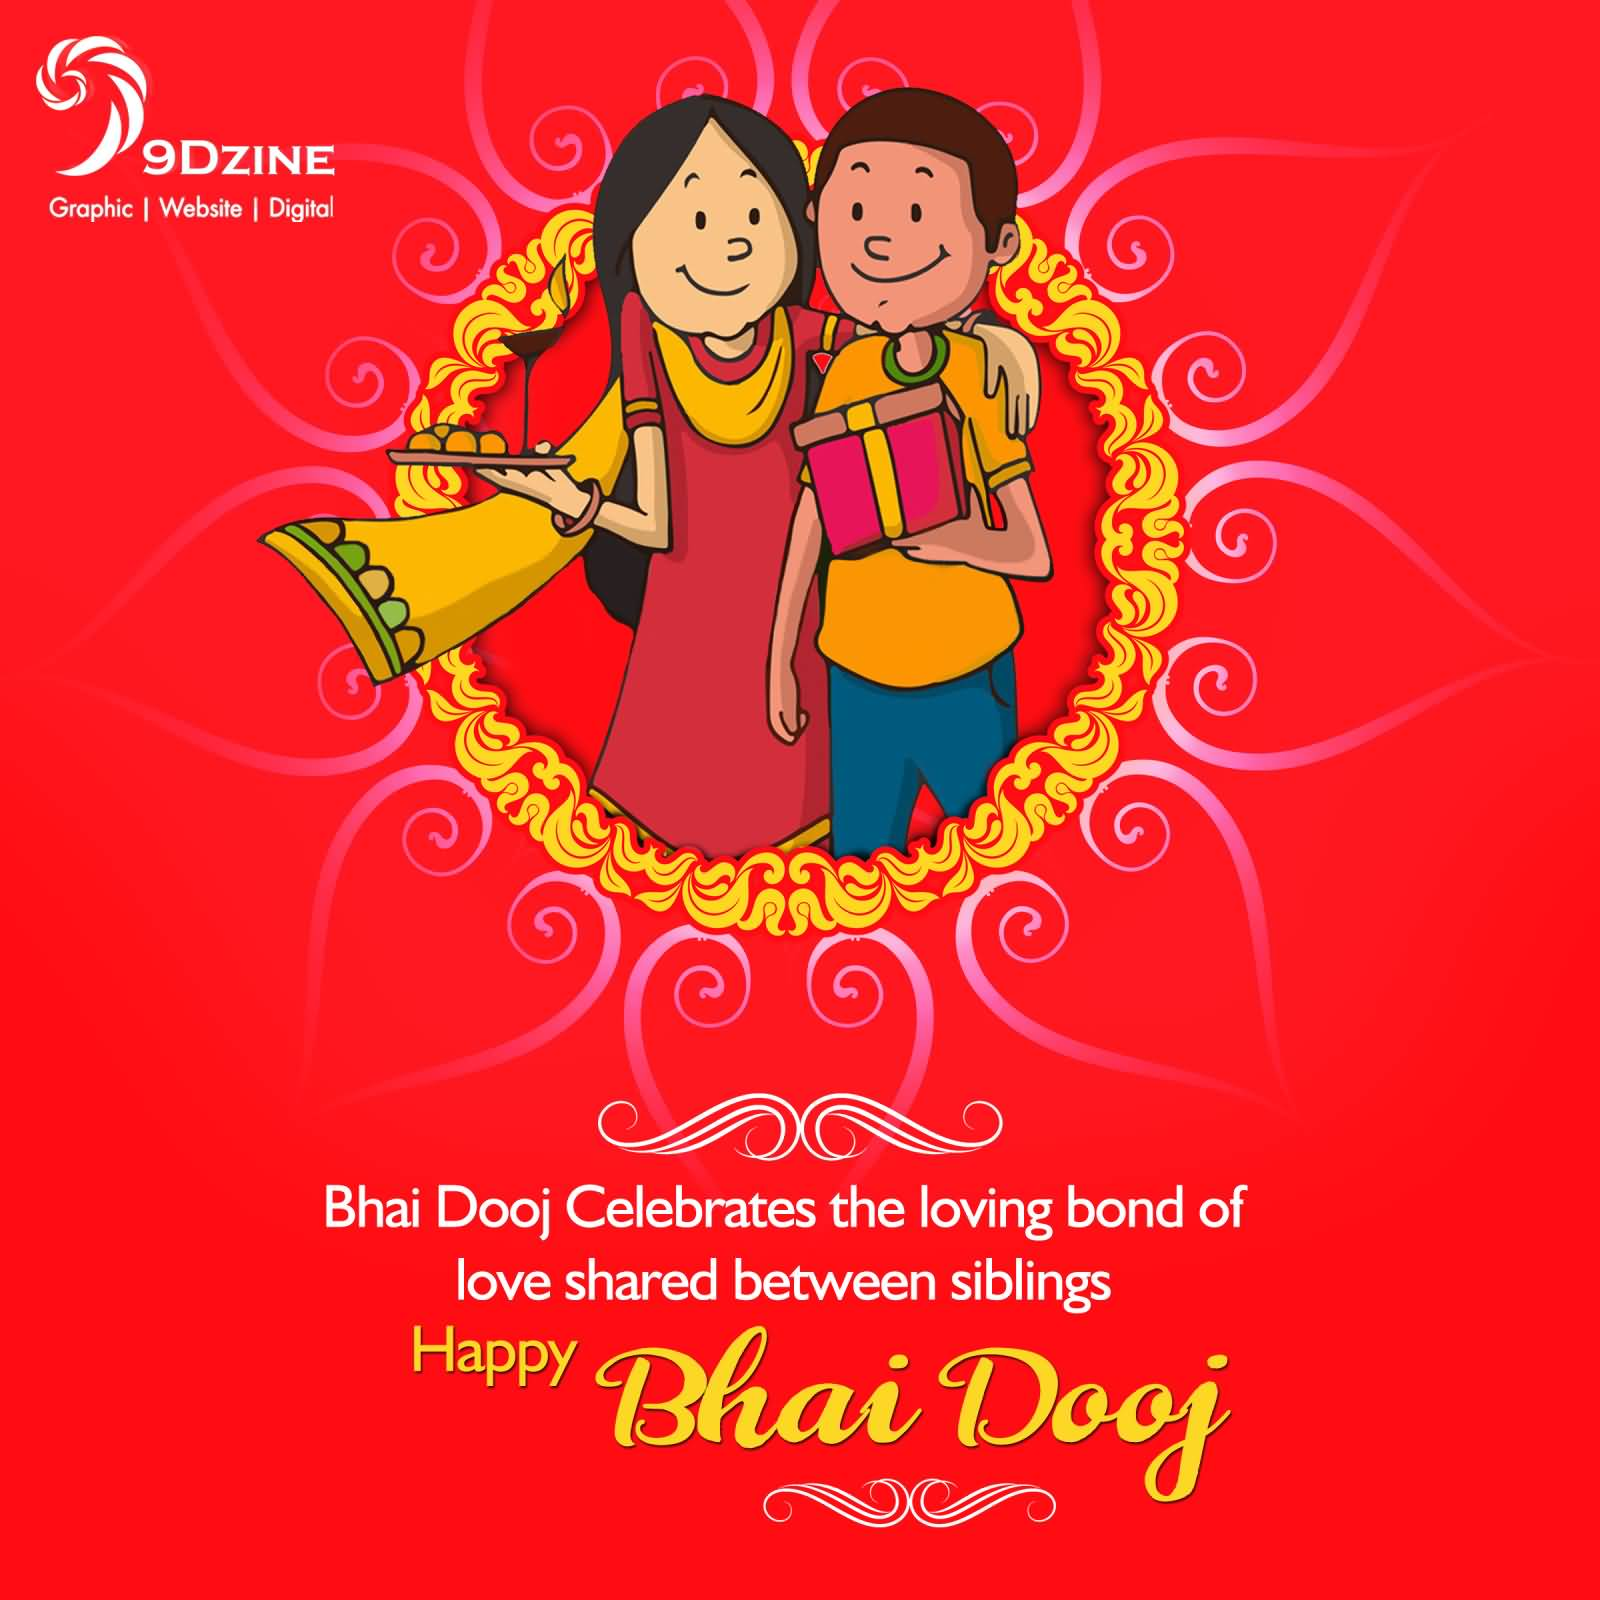 Bhai dooj celebrates the loving bond of love shared between siblings bhai dooj celebrates the loving bond of love shared between siblings happy bhai dooj greeting card m4hsunfo